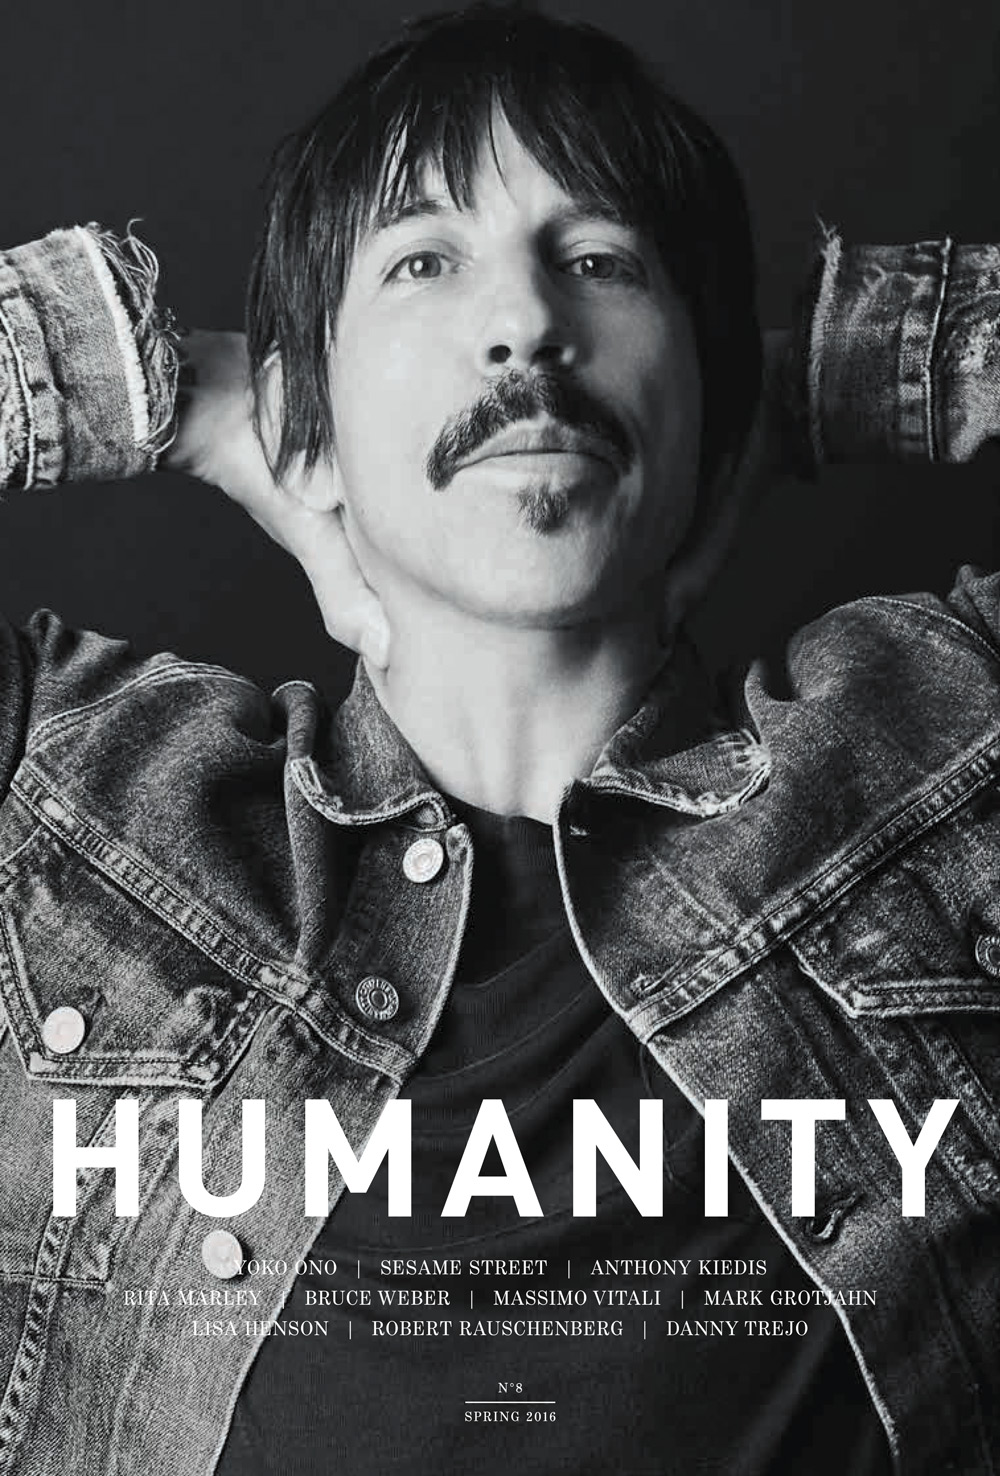 Anthony Kiedis on the cover of Humanity No.8, photo: Scott Lipps